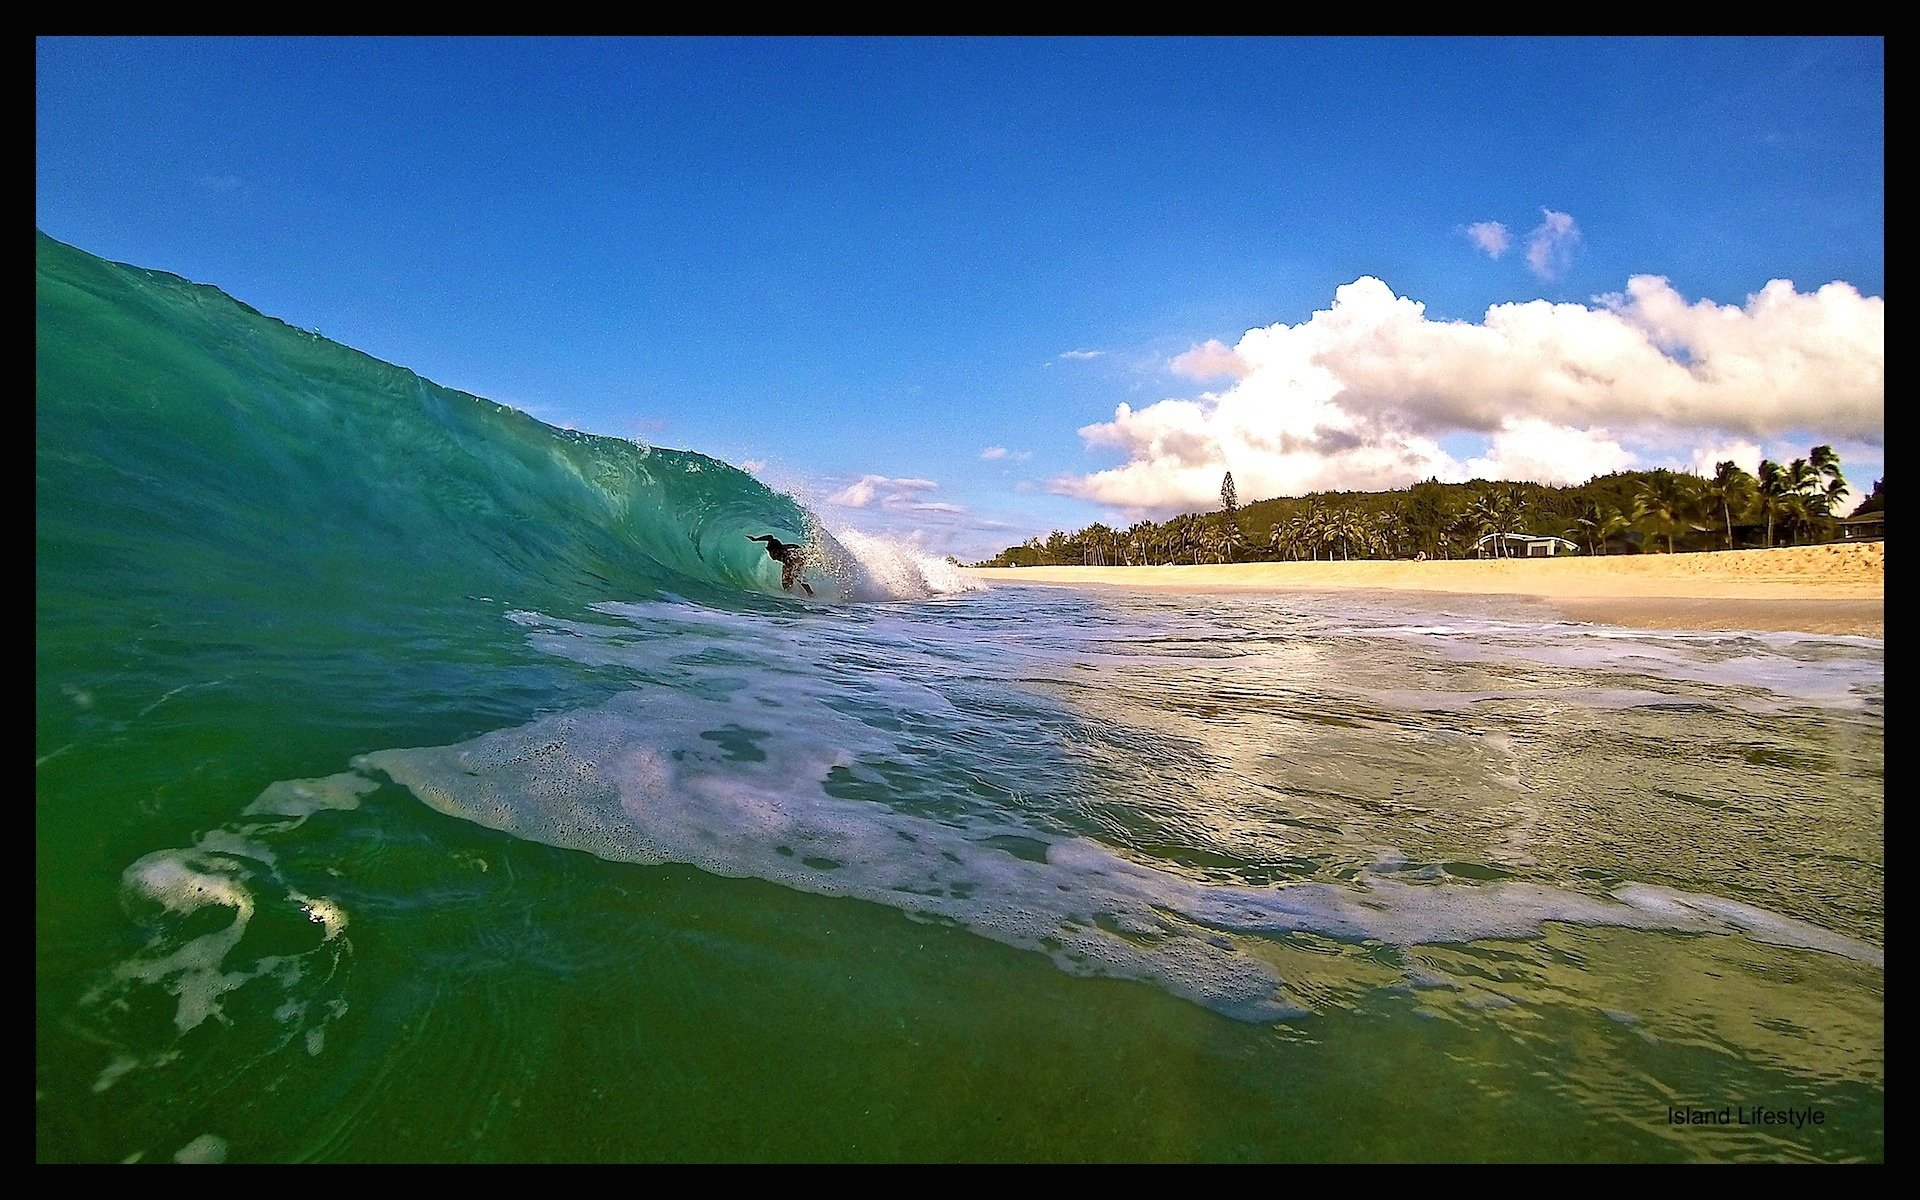 Chris Giacobone's photo of Pipeline & Backdoor